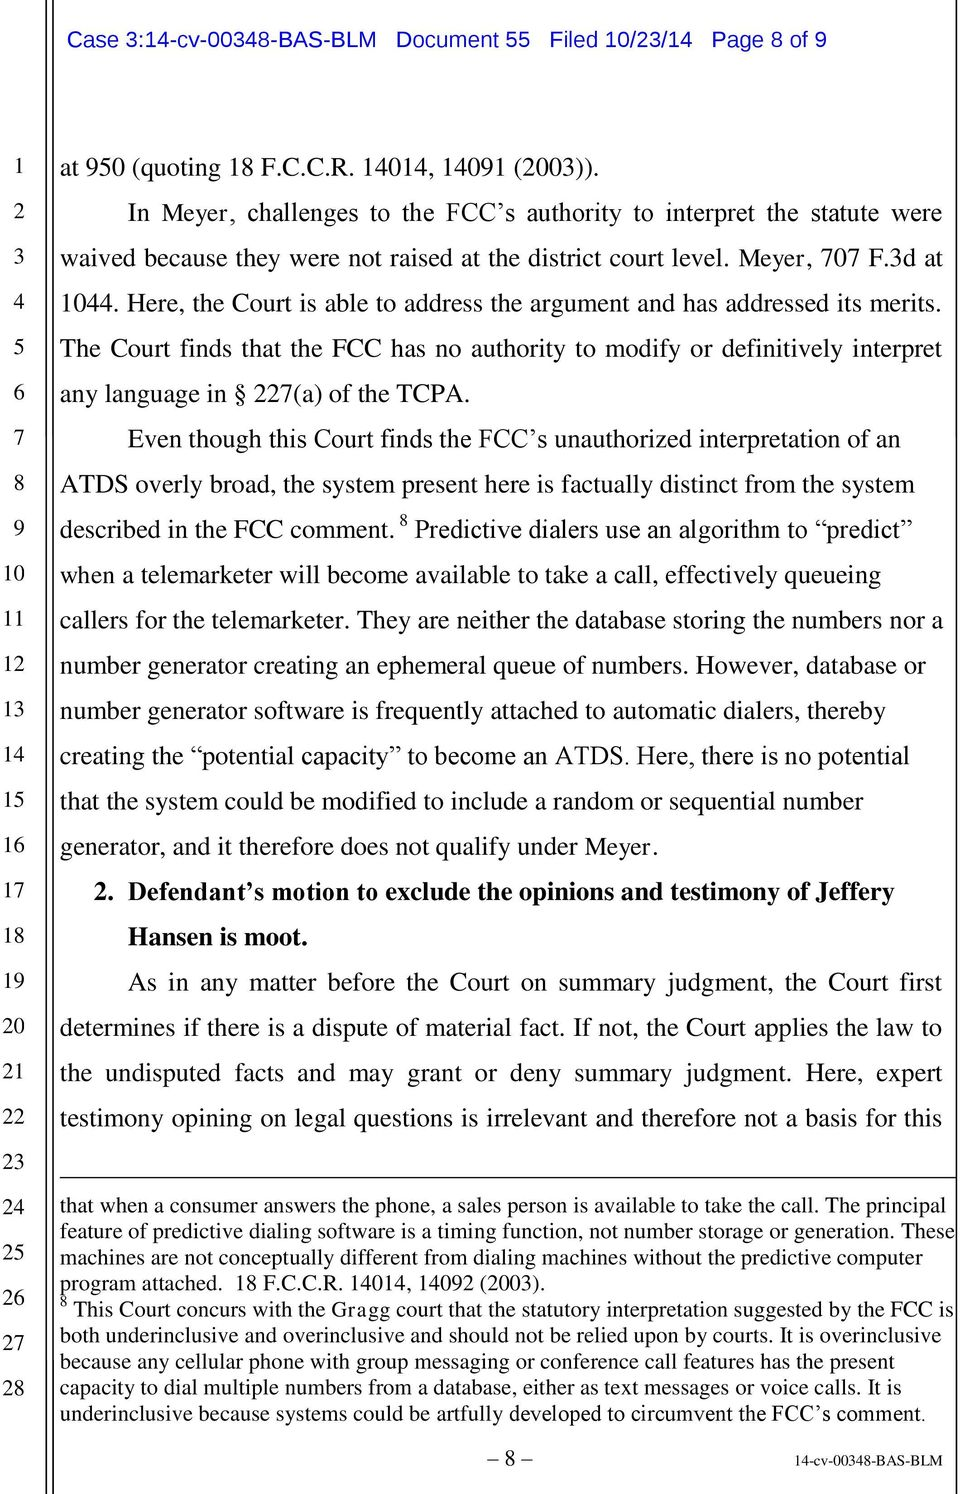 Here, the Court is able to address the argument and has addressed its merits. The Court finds that the FCC has no authority to modify or definitively interpret any language in (a) of the TCPA.